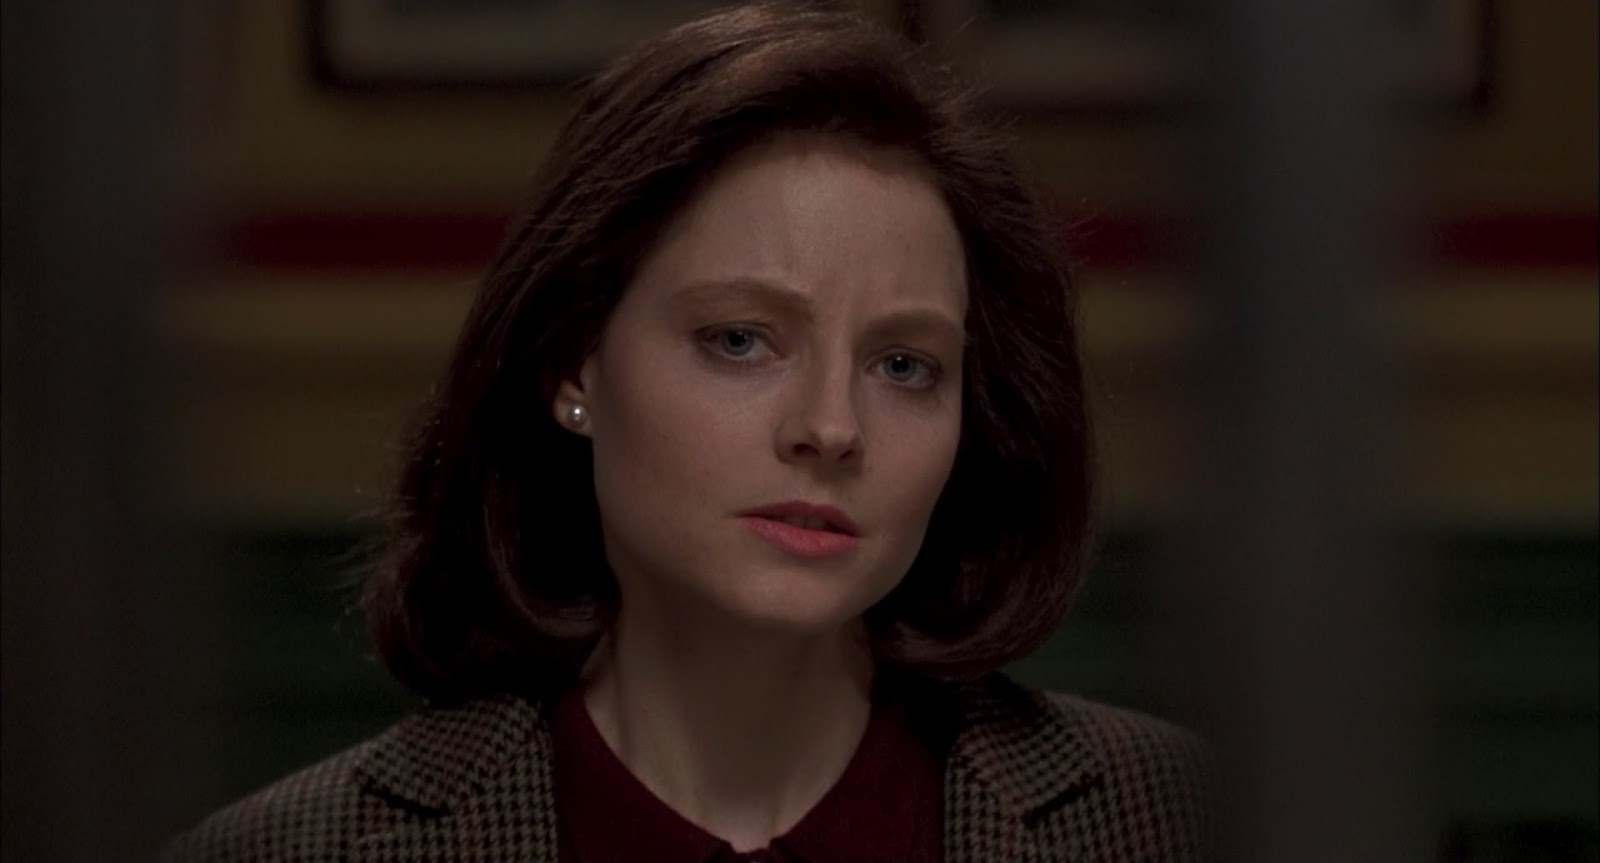 the silence of the lambs american film maker jonathan jodie foster as clarice starling in the silence of the lambs